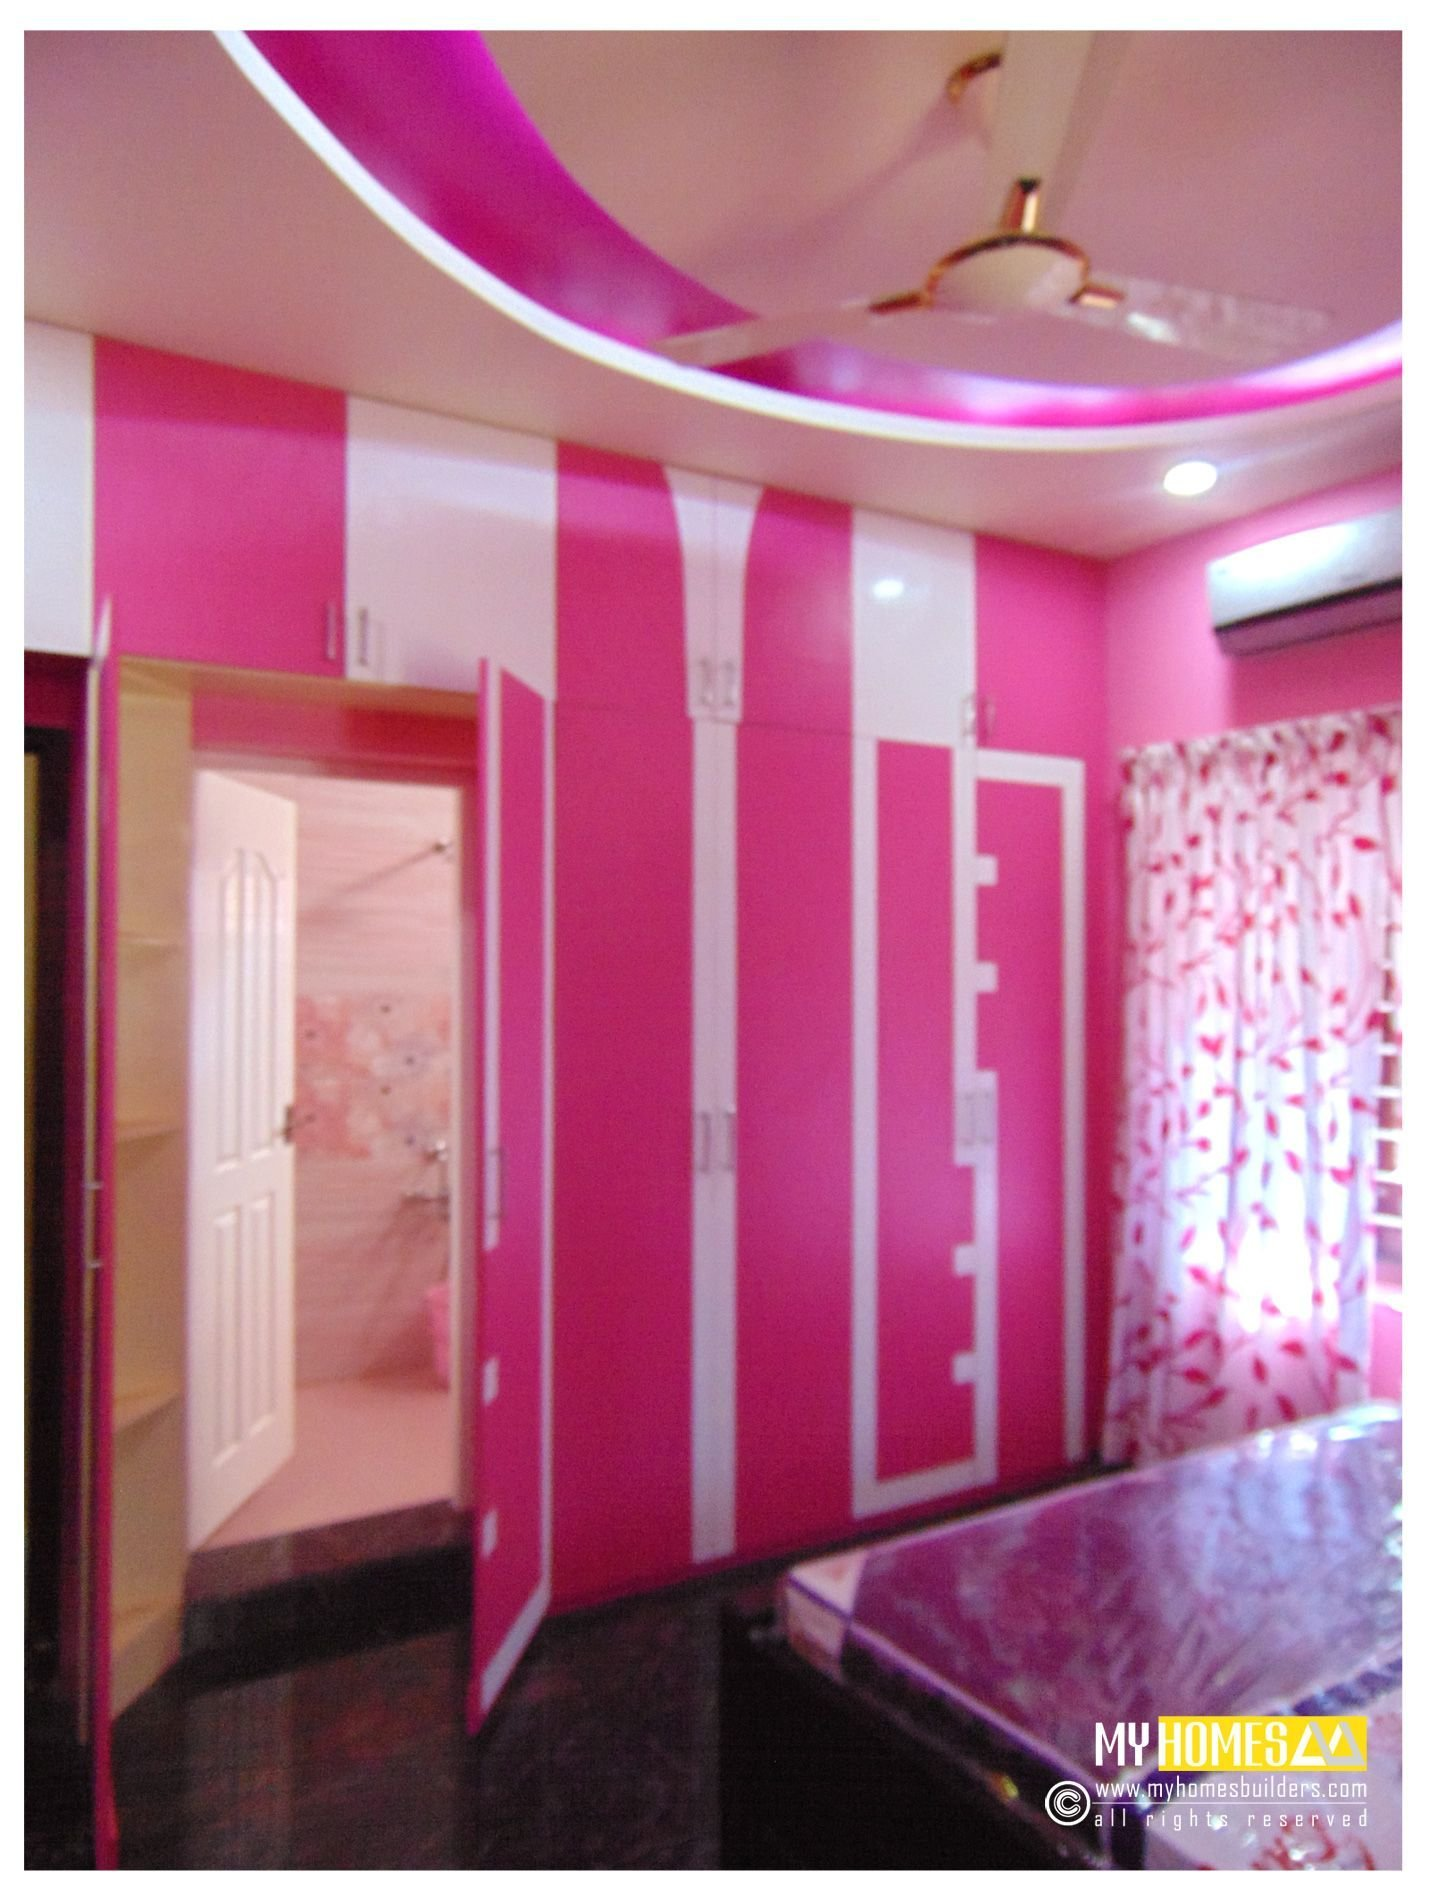 Best Kerala Homes Top Bedroom Interior Designs Kerala Best With Pictures